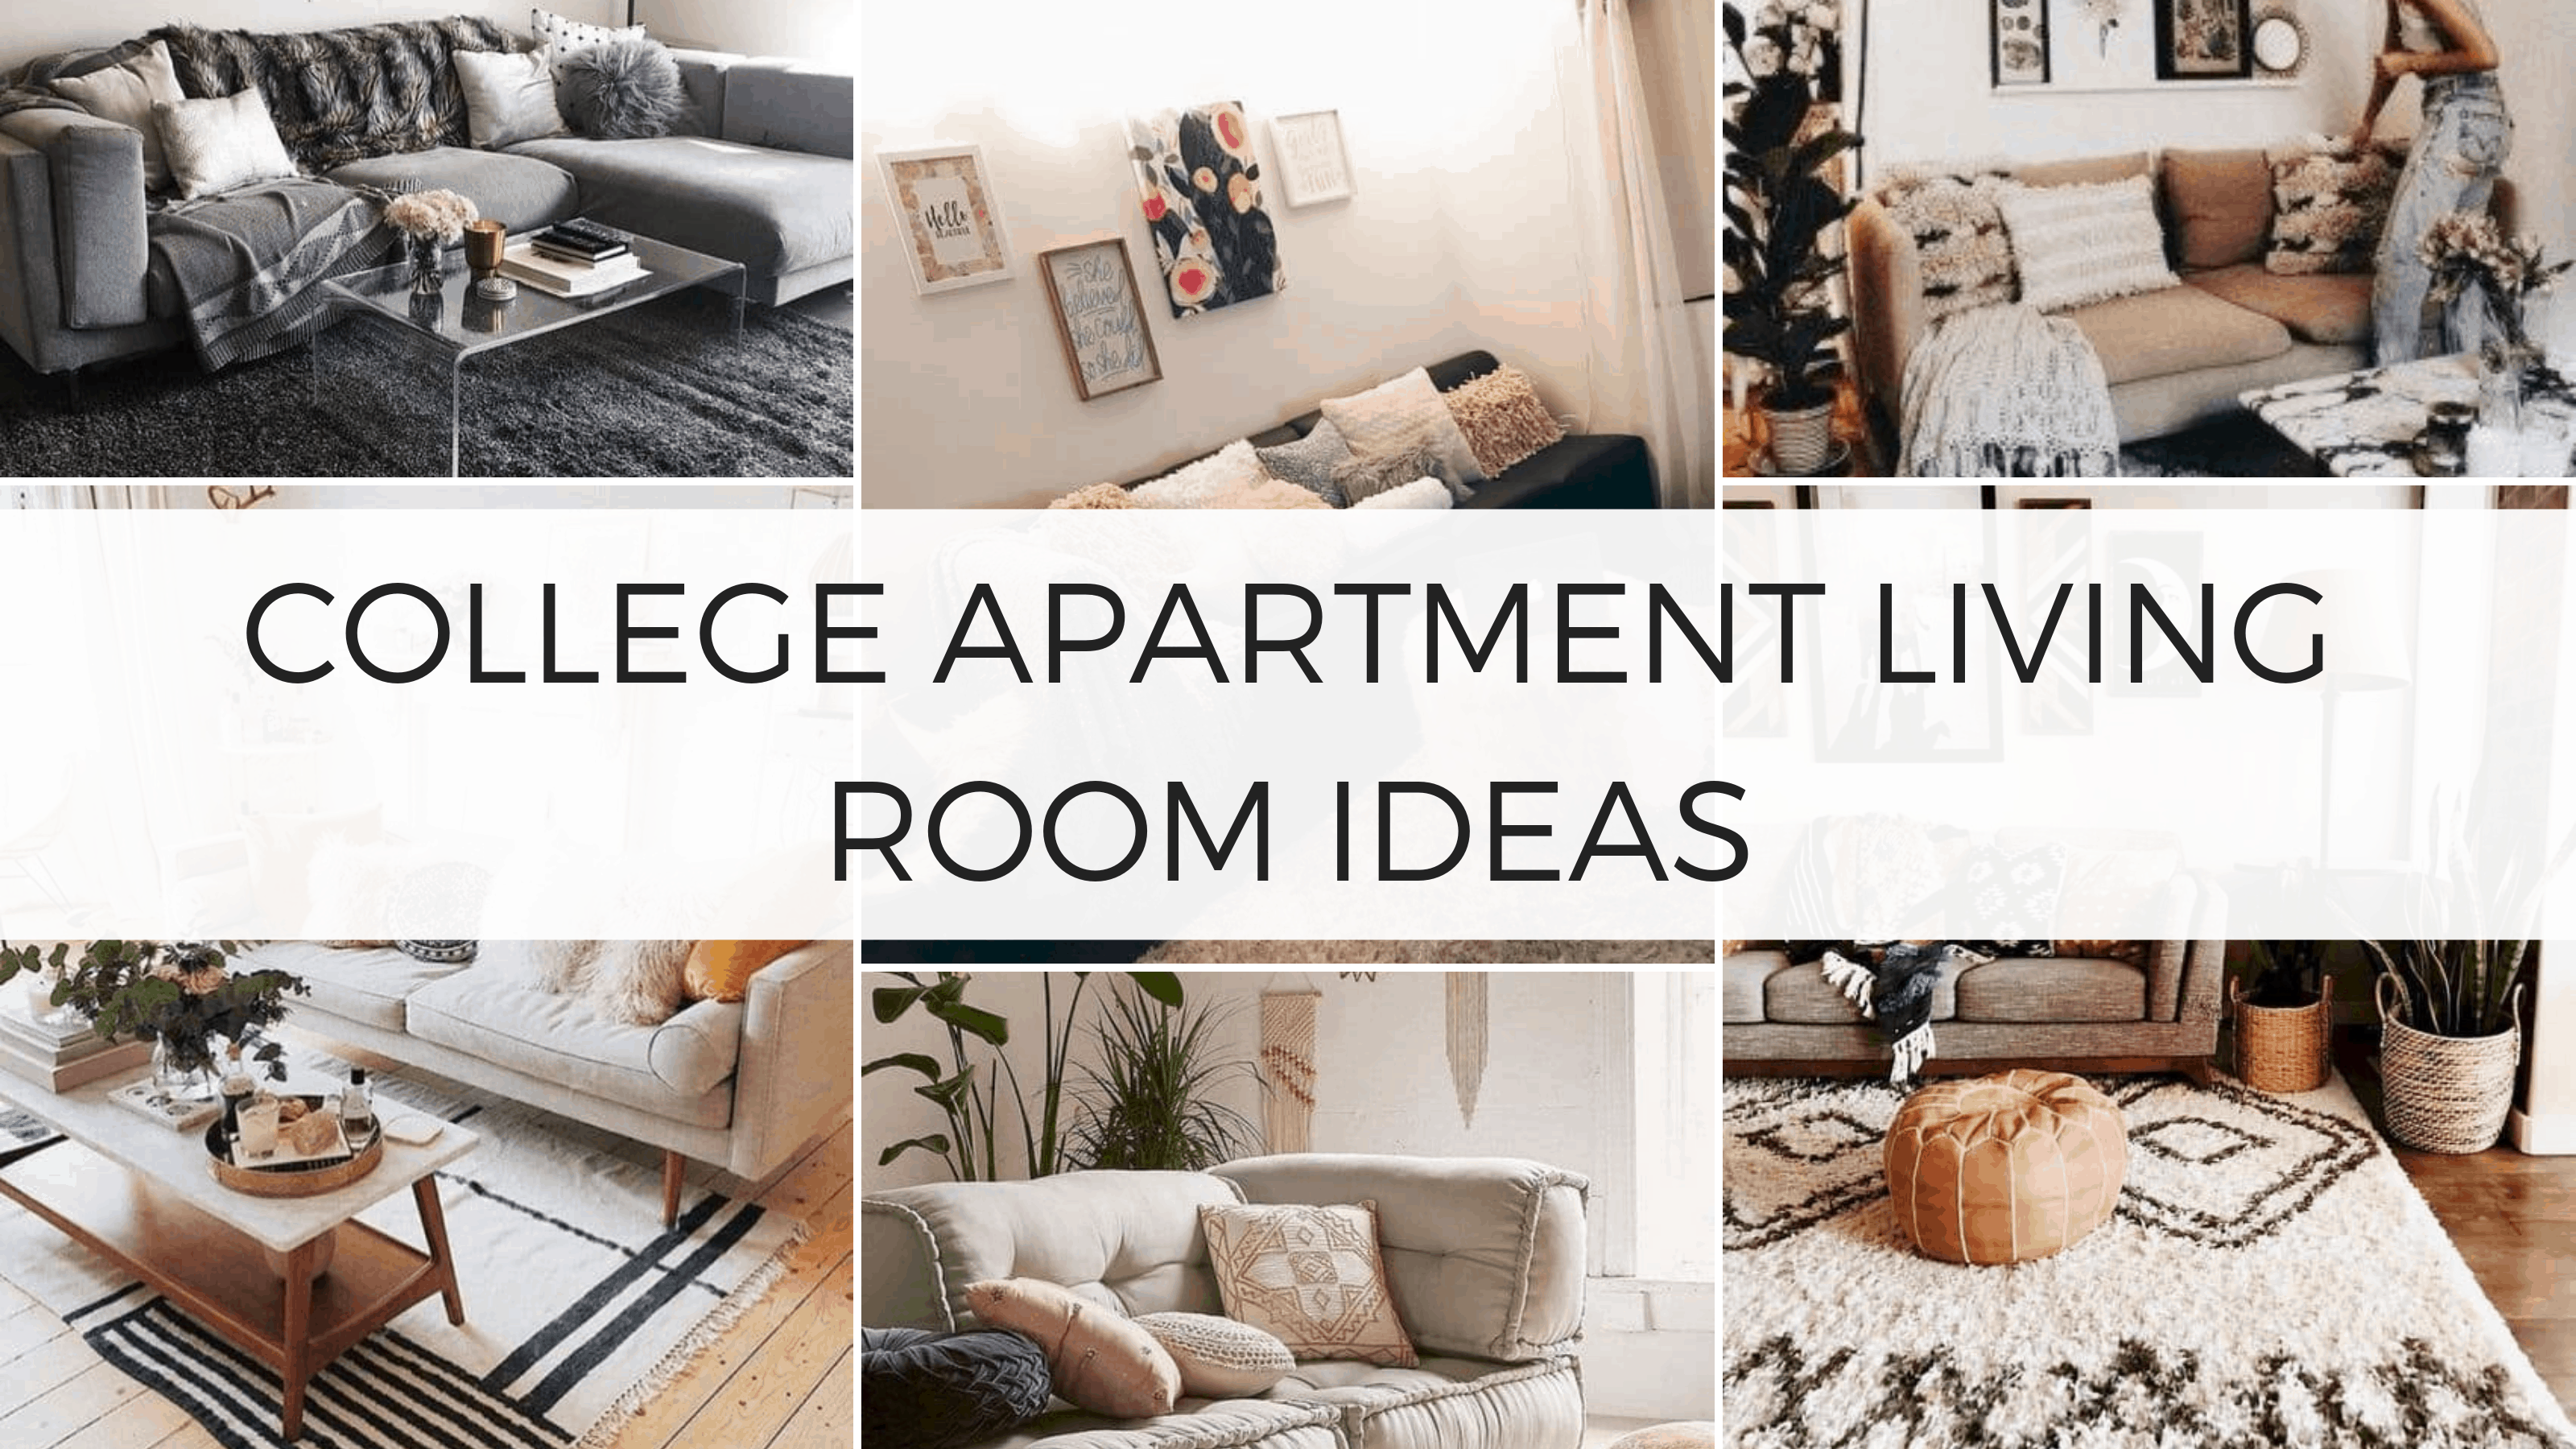 26 Insanely Cute College Apartment Living Room Ideas To Copy - By ...